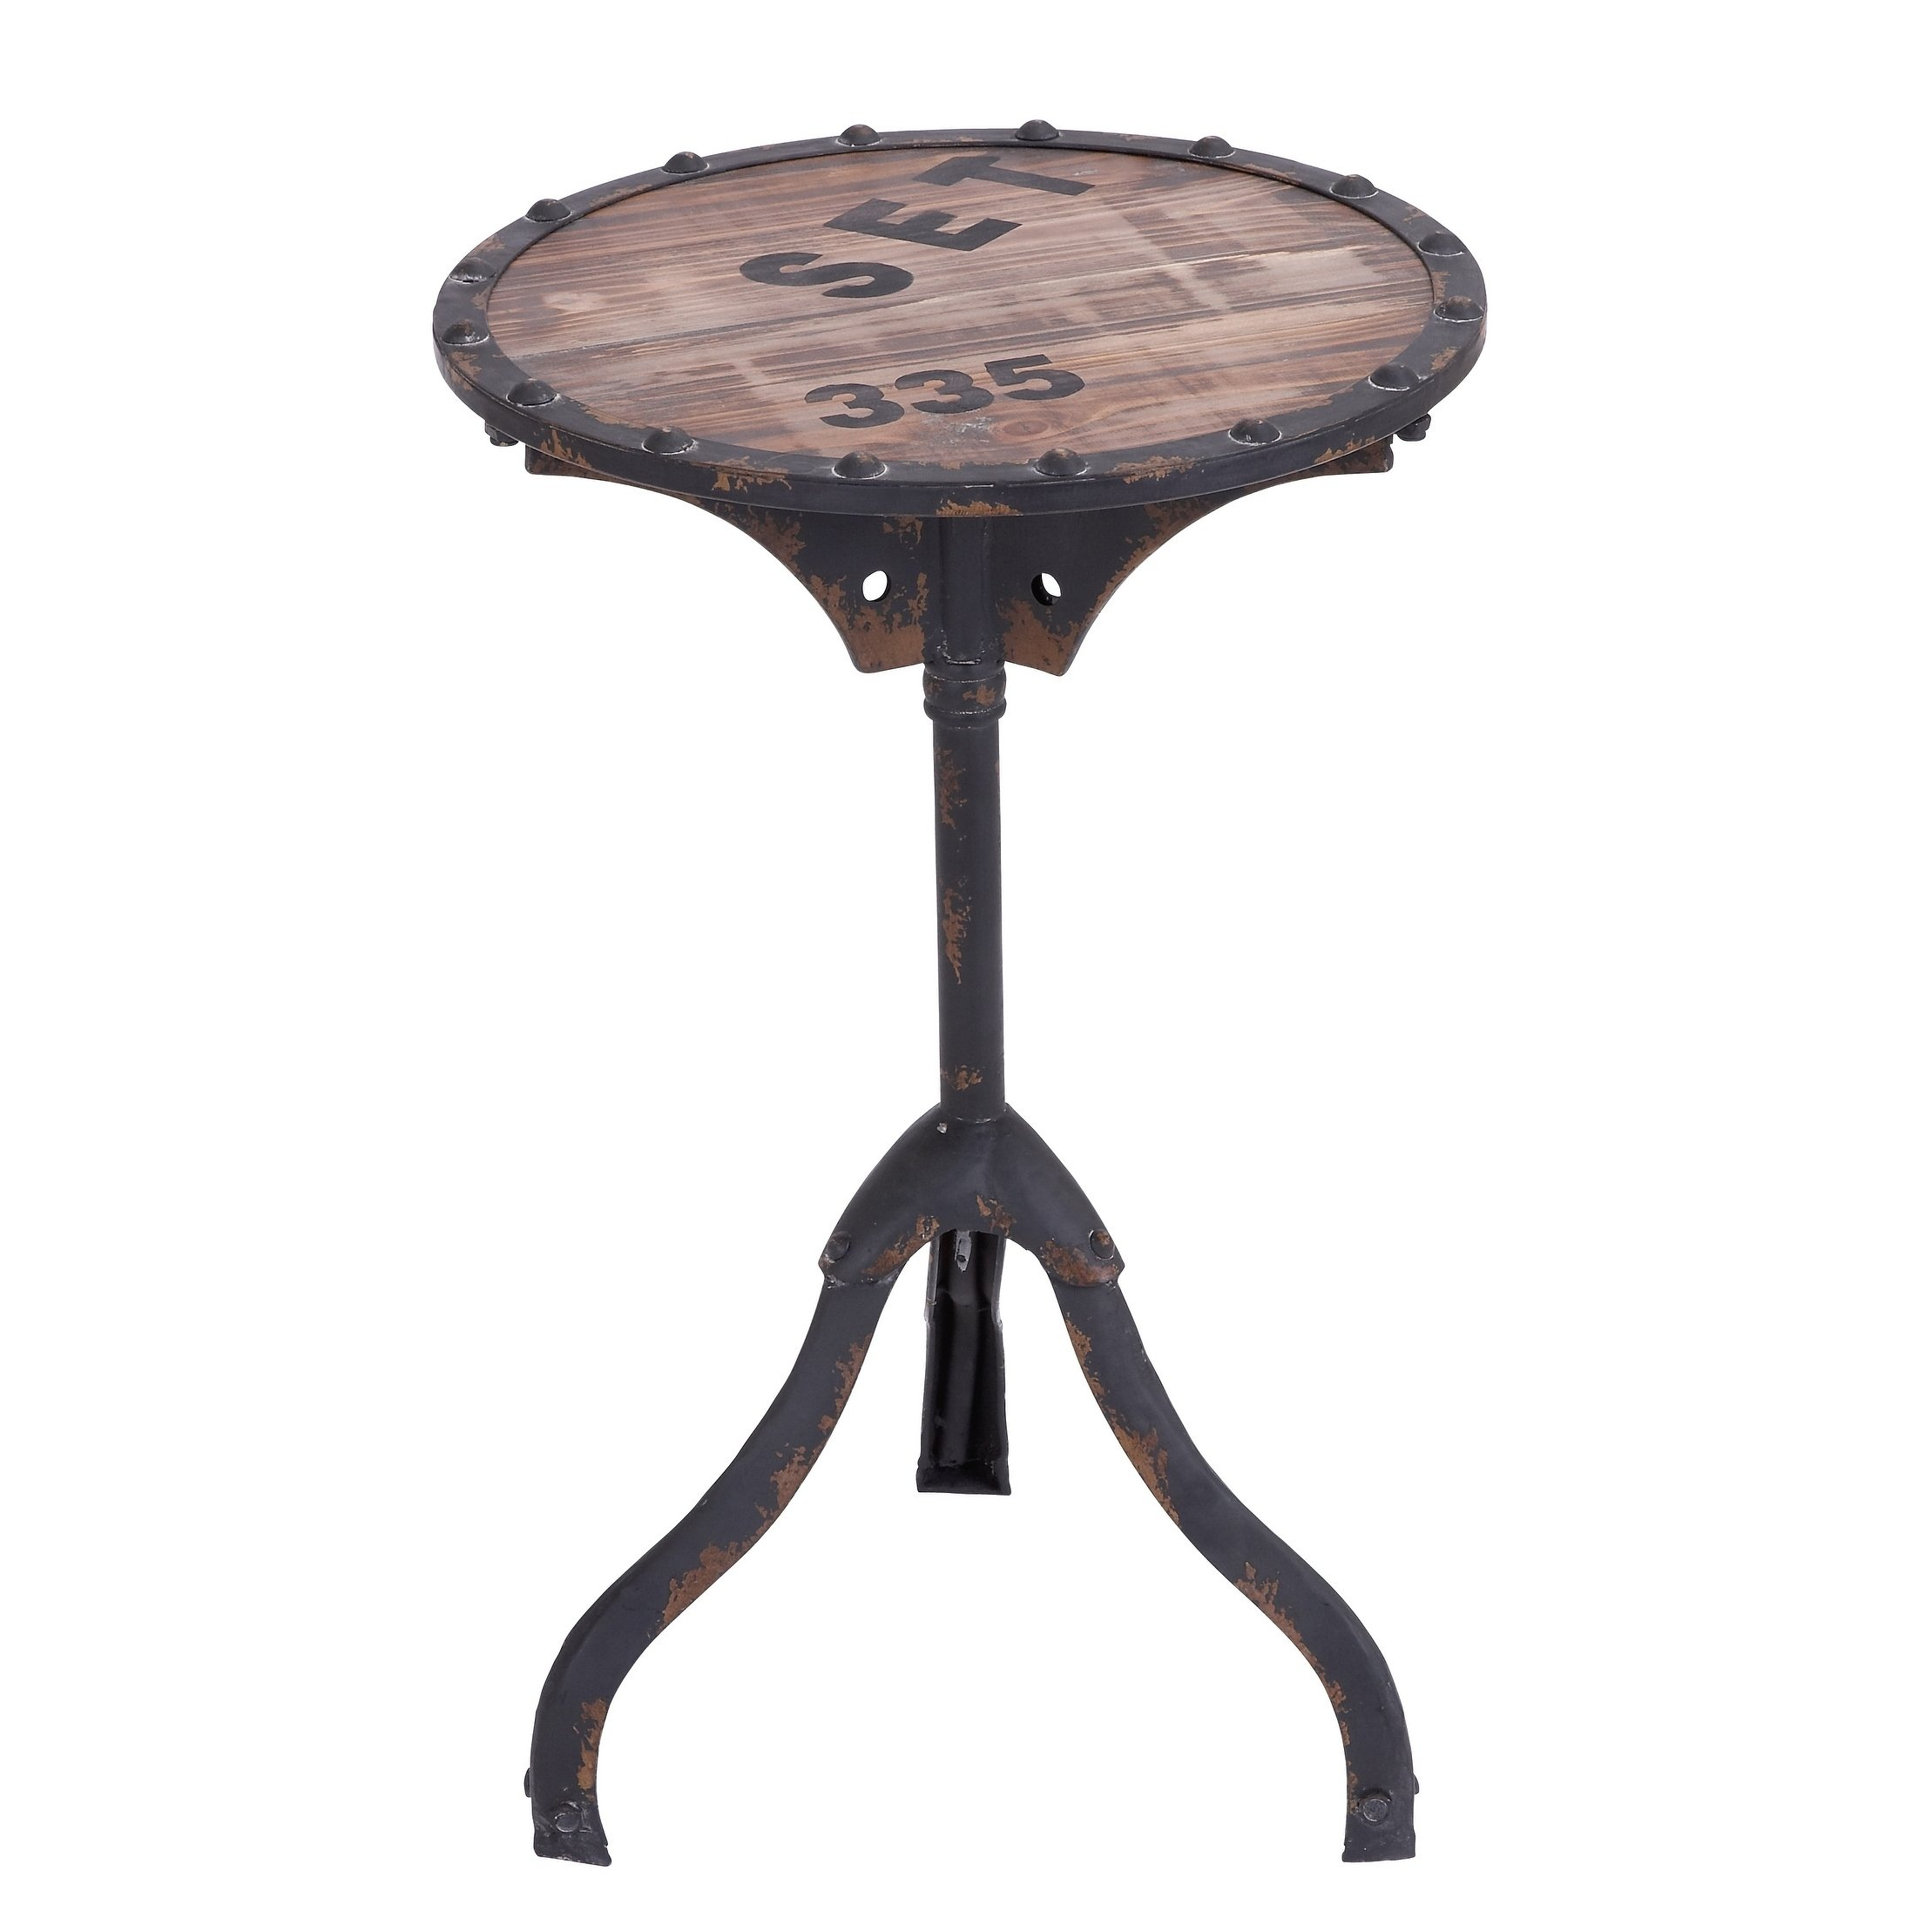 rustic industrial style accent table studio free pedestal shipping today asian lamp target threshold windham cabinet mirimyn outside furniture clearance and end tables home decor